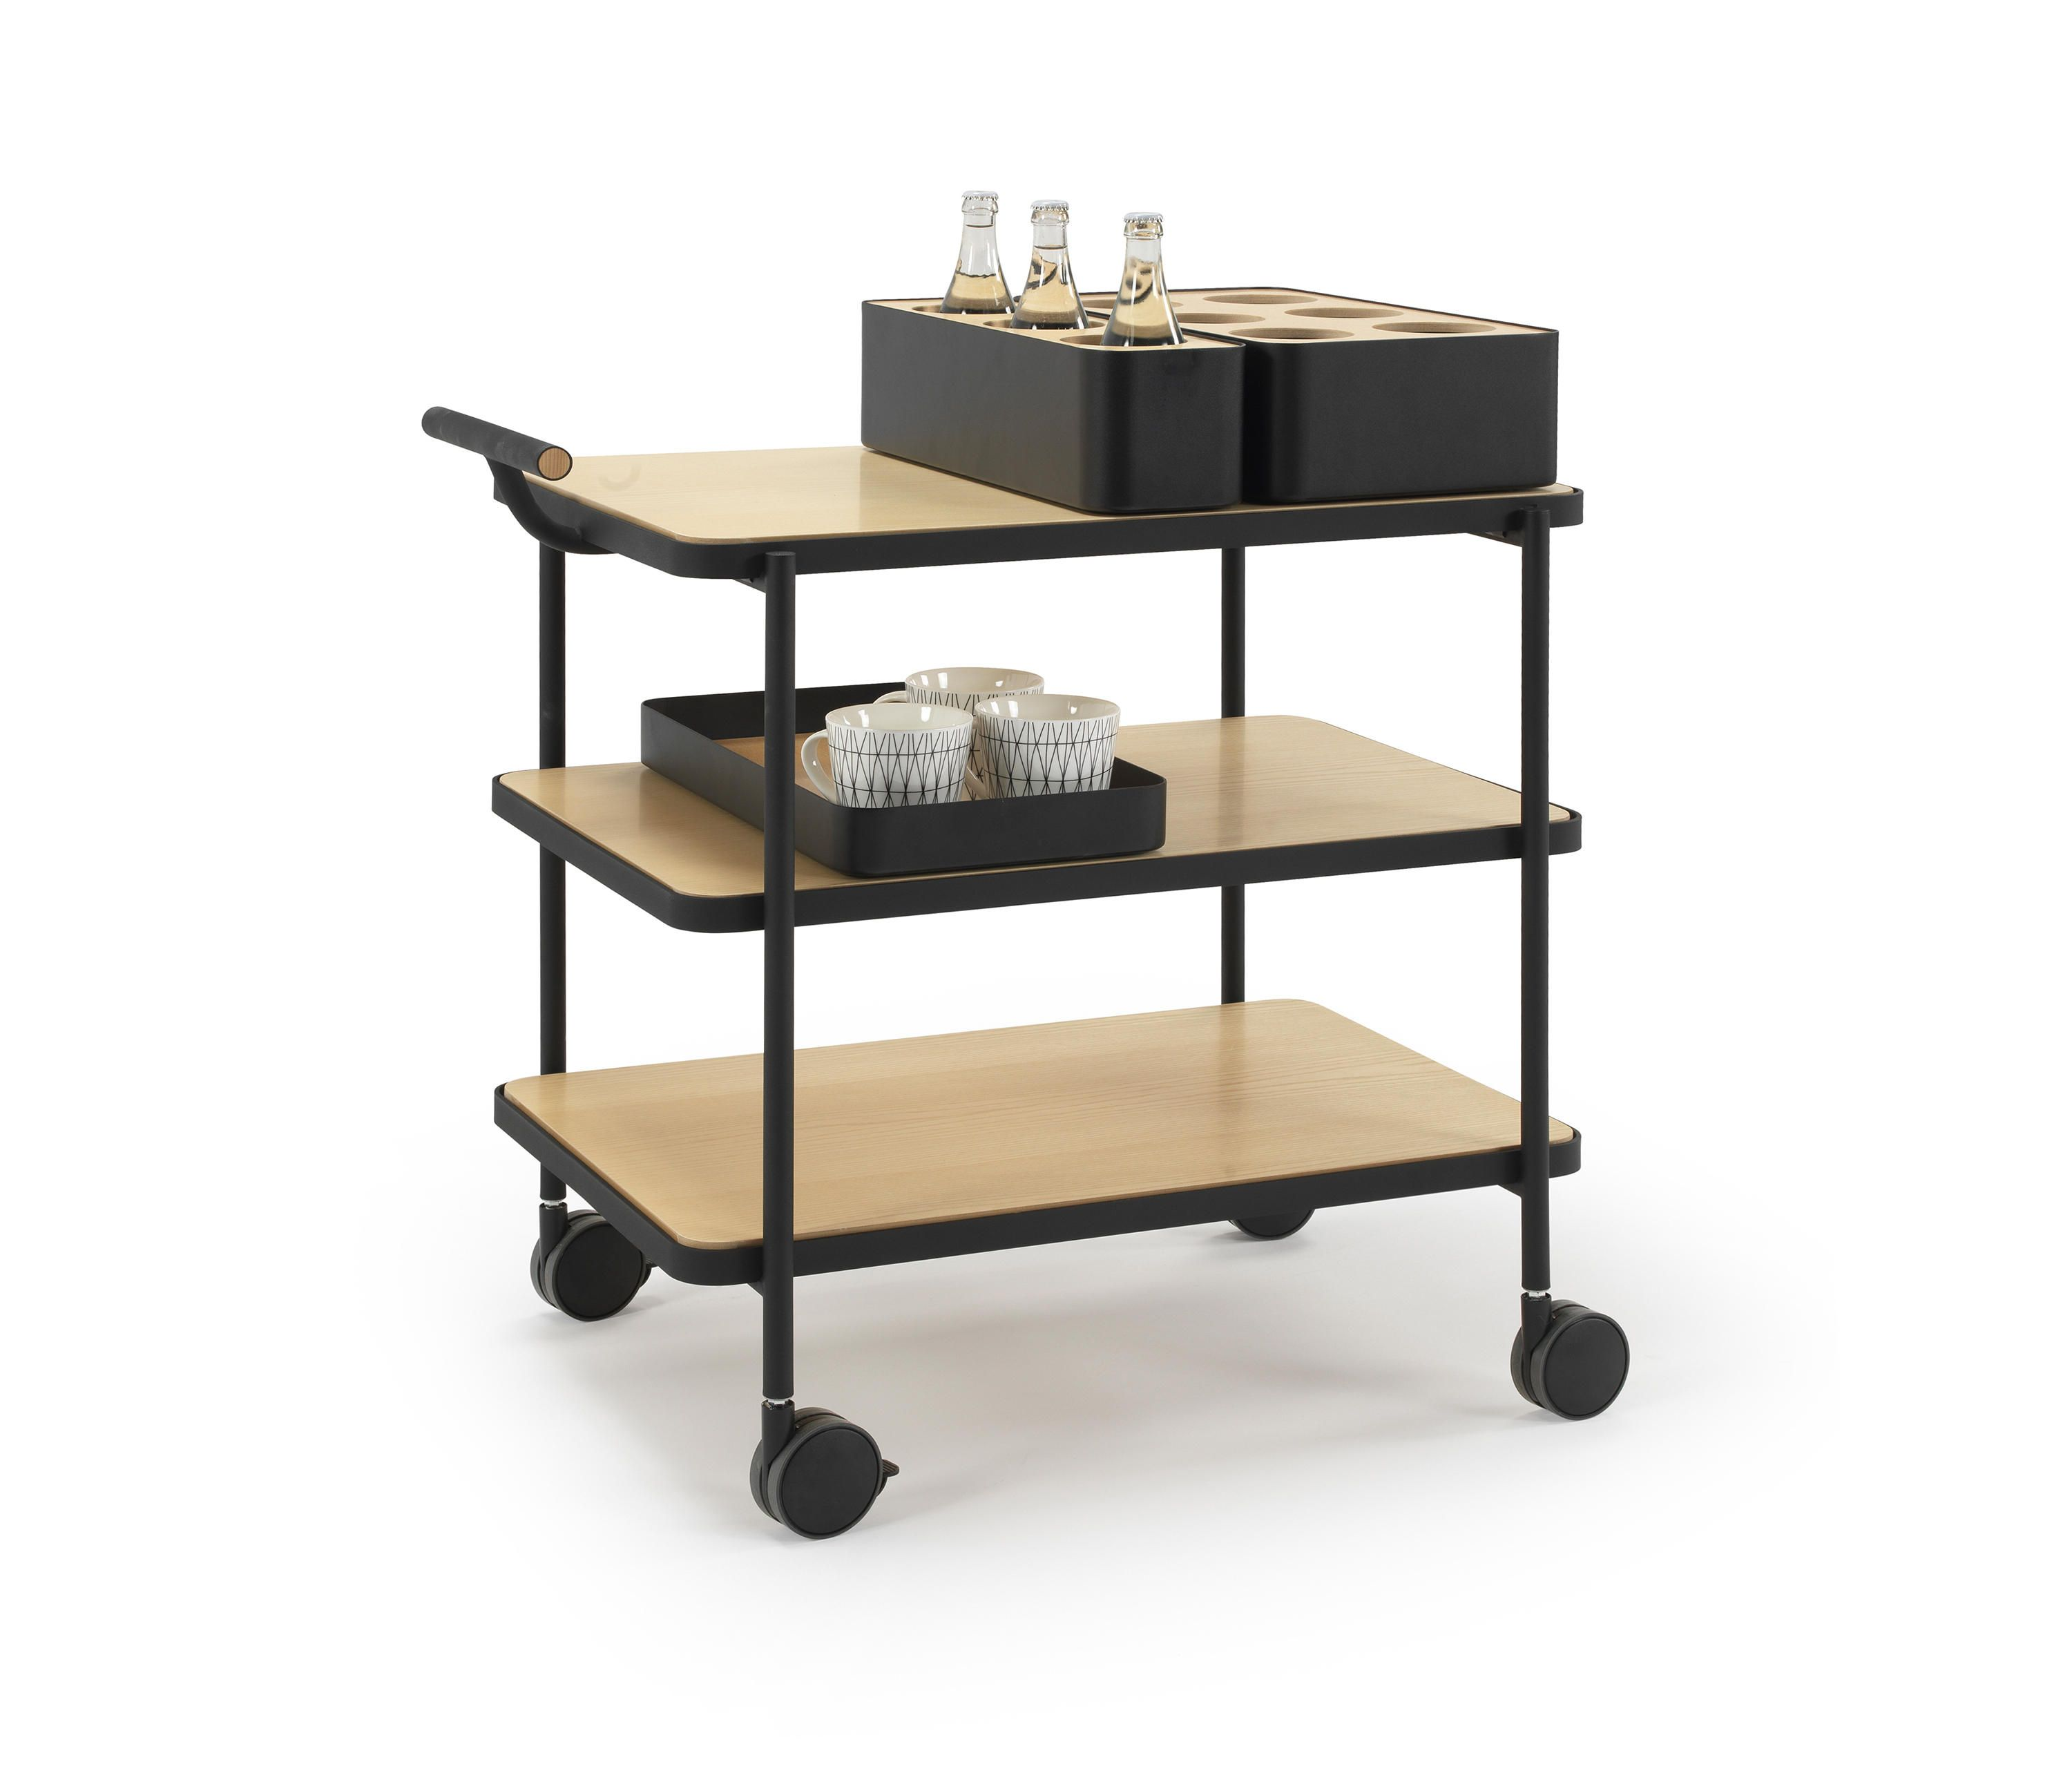 Exo Trolley by Horreds | Tea-trolleys / Bar-trolleys | Möbel ...